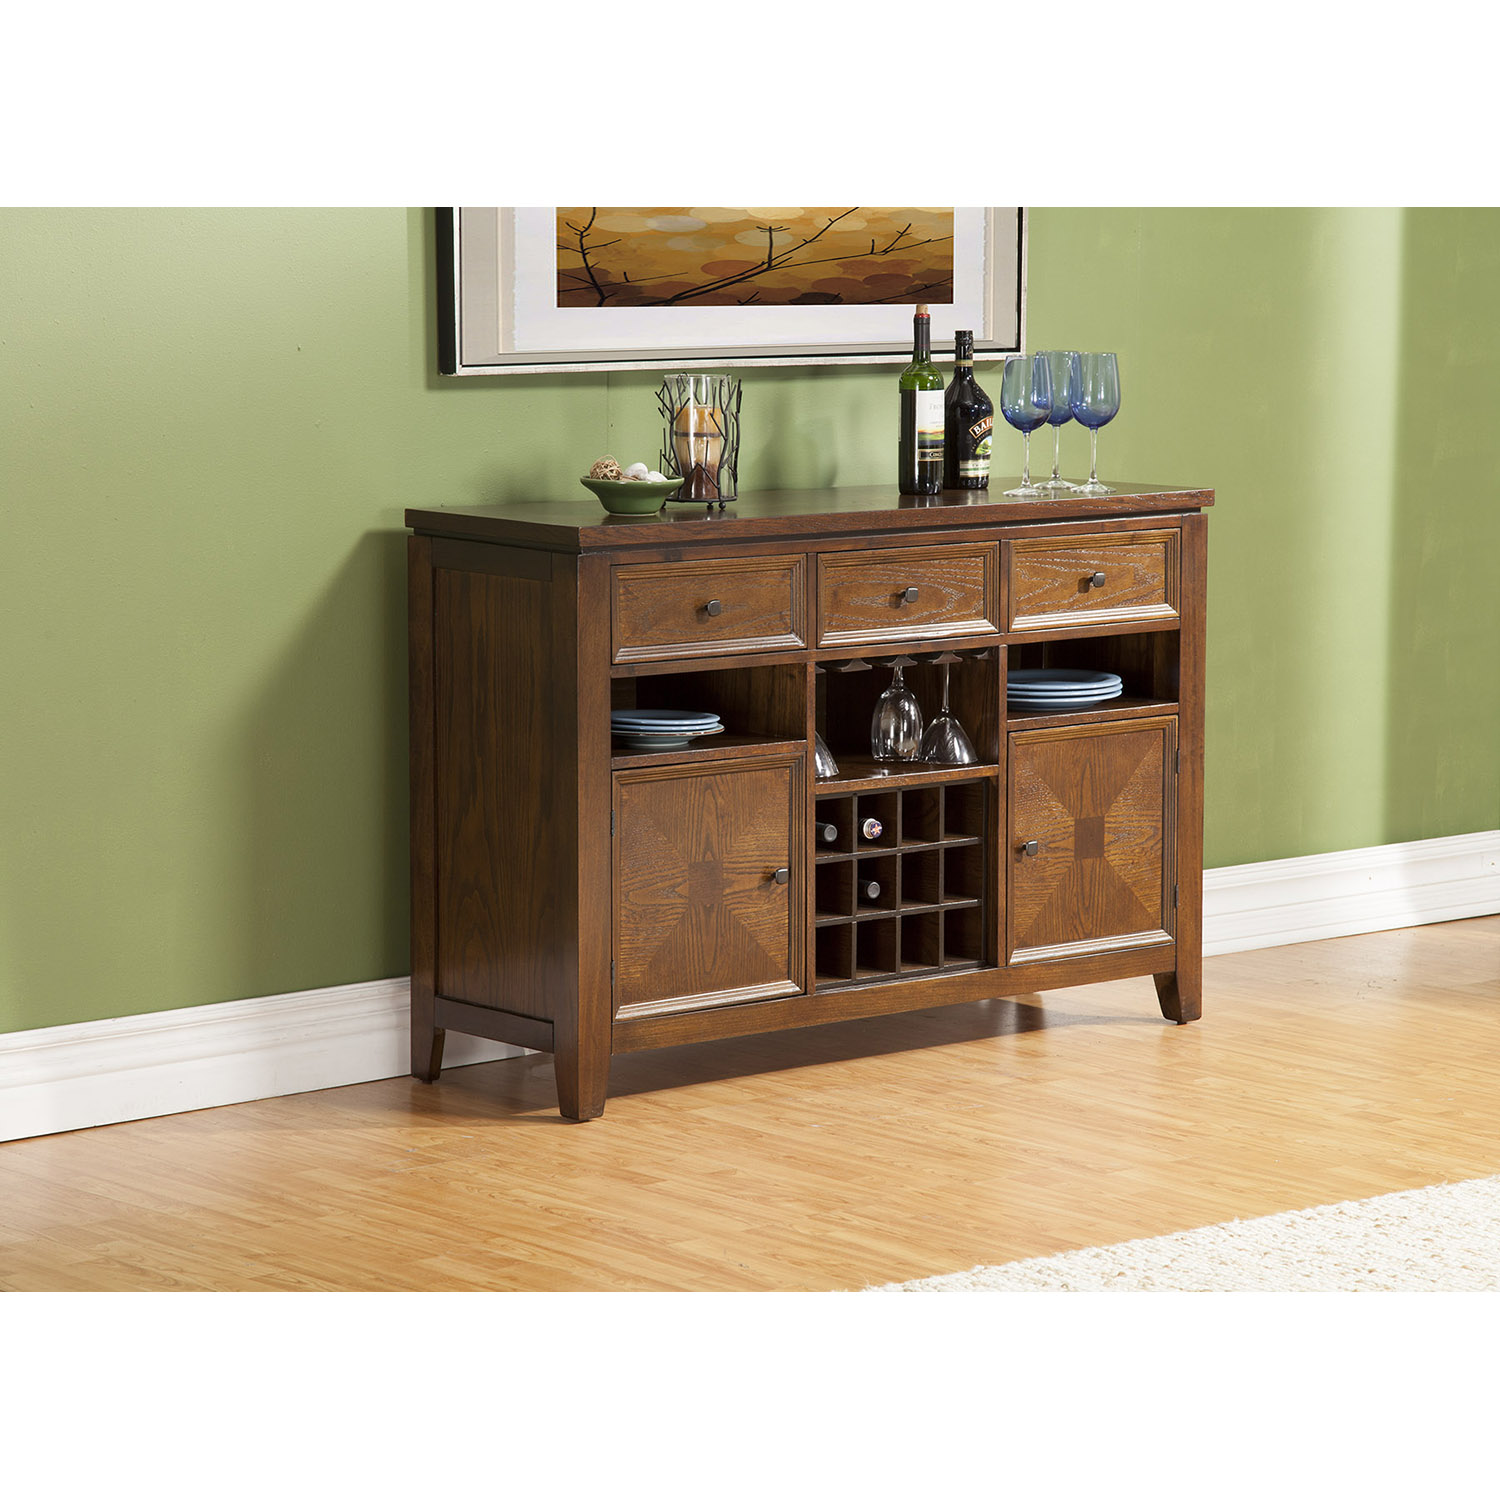 Albany Dark Oak Server - 2 Doors, 3 Drawers, Open Shelves - ALP-4278-06